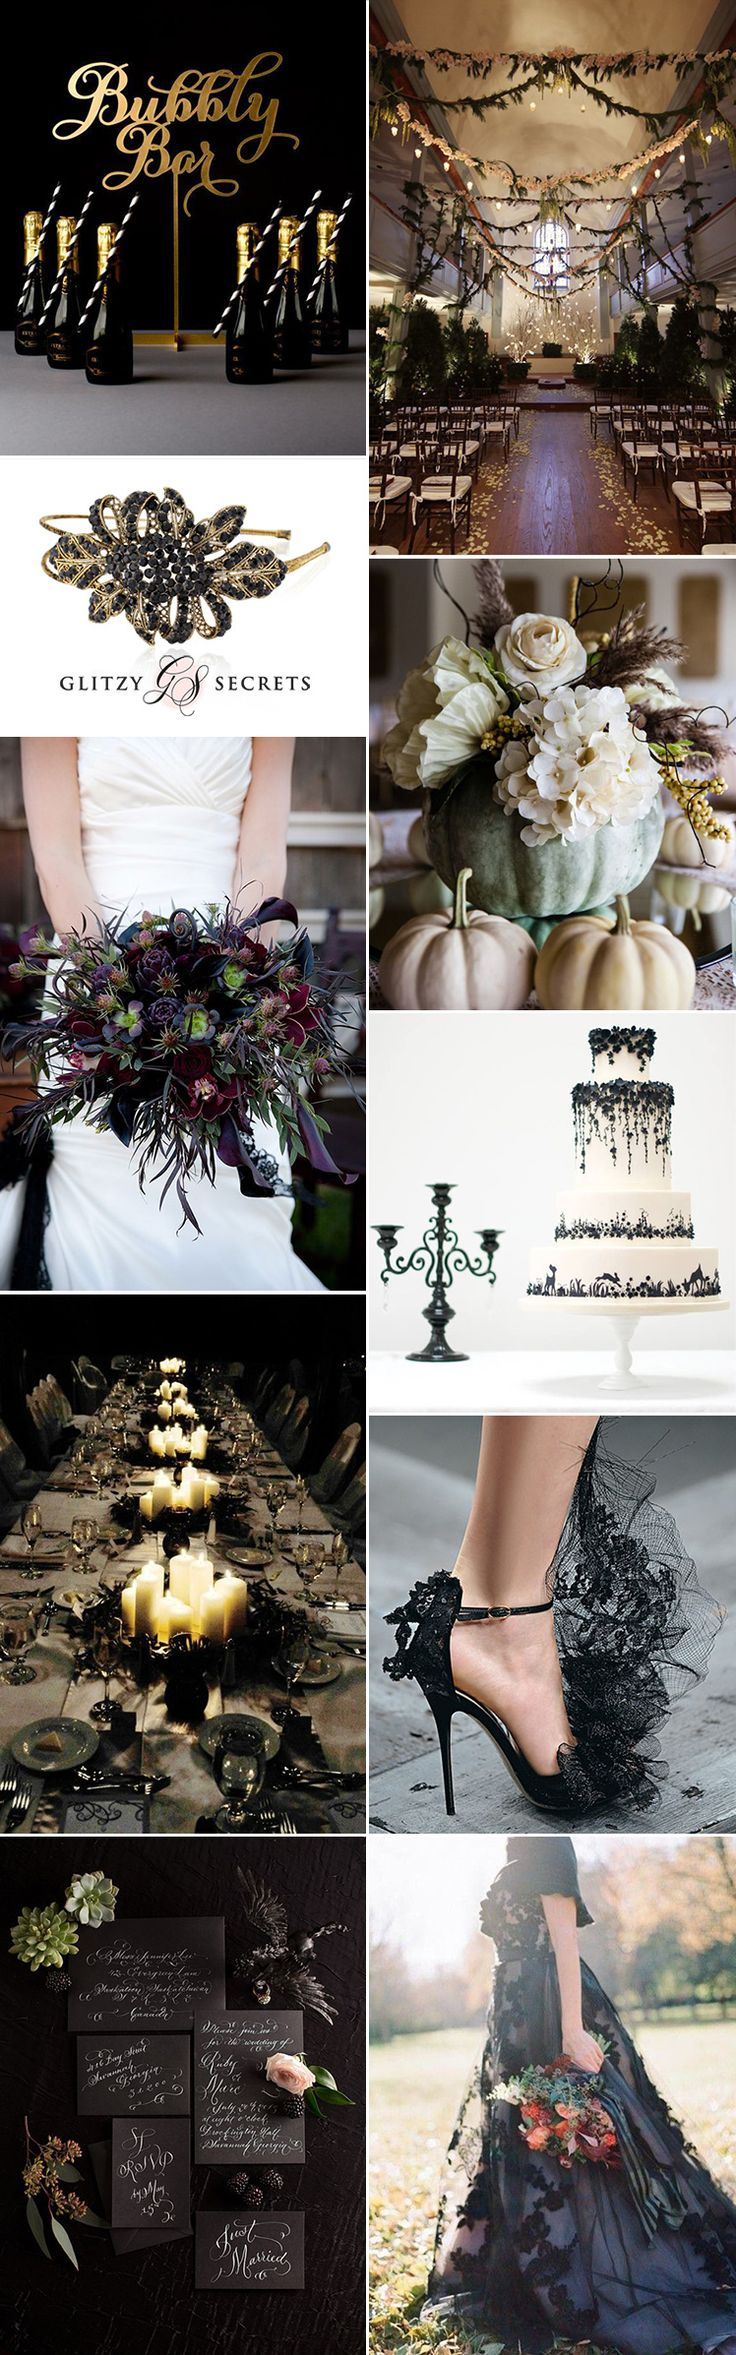 Best 25+ Halloween themed weddings ideas on Pinterest | Masquerade ...